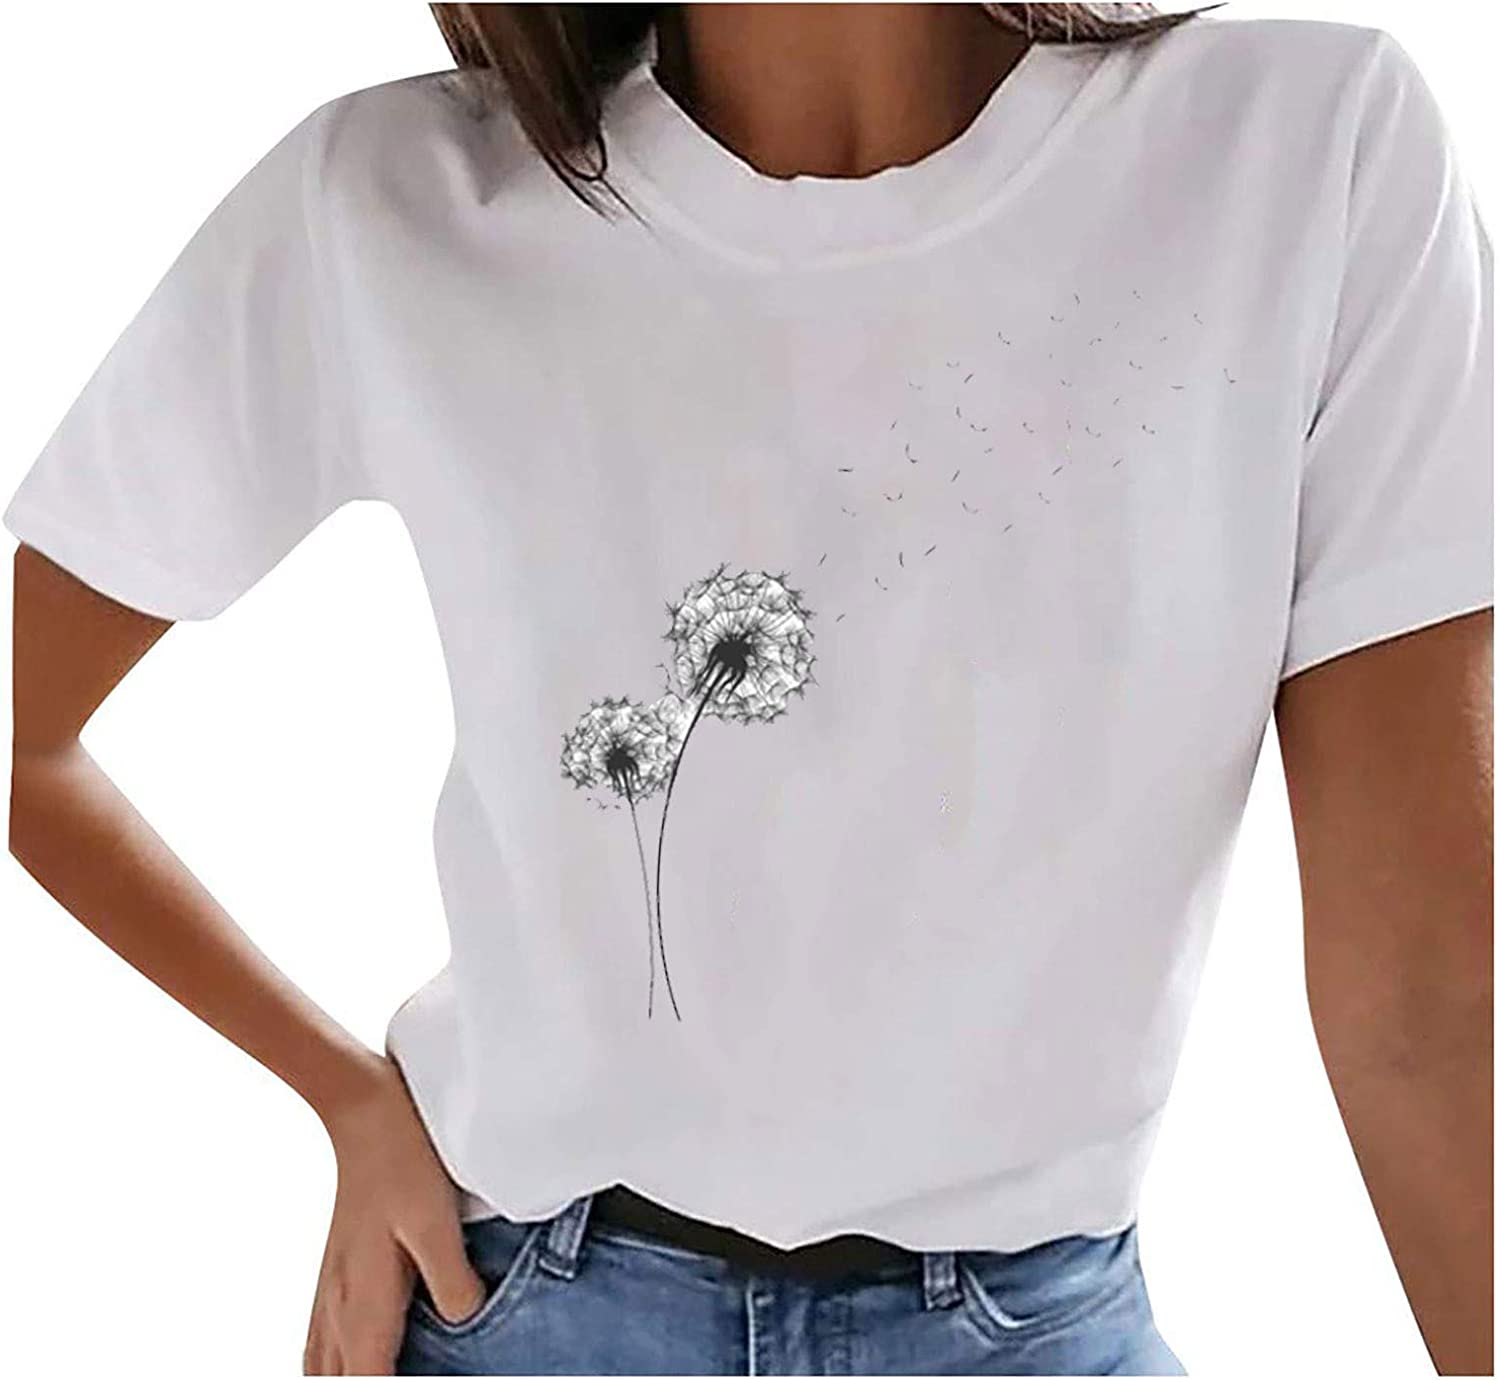 Casual Butterfly Printed Tops for Women Solid O-Neck T-Shirts Short Sleeves Tees Summer Classic Blouse Loose Comfy Tunic